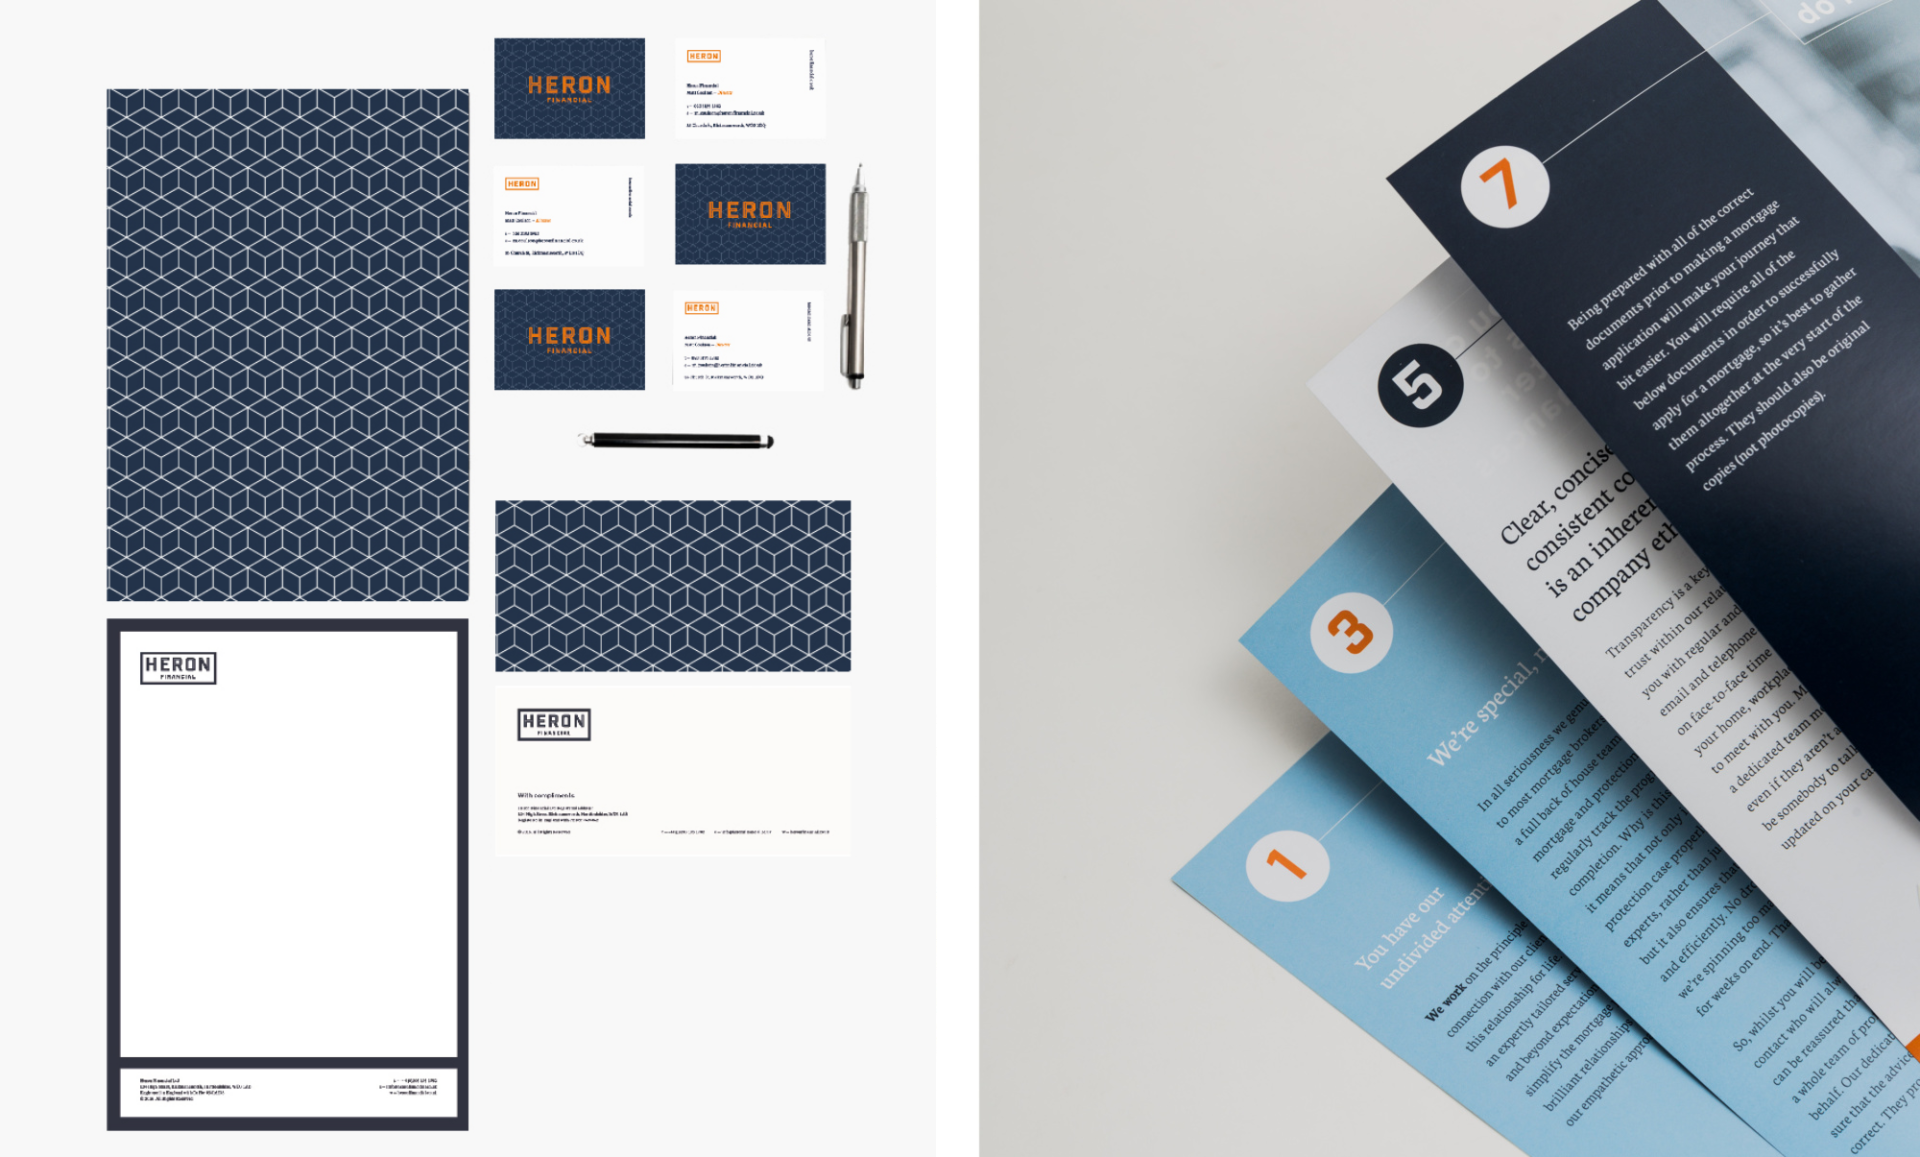 Examples of stationary and brochure design for Heron Financial, Mortgage and Insurance Brokers. Graphic design by Barefaced Studios, design agency based in Islington, North London.